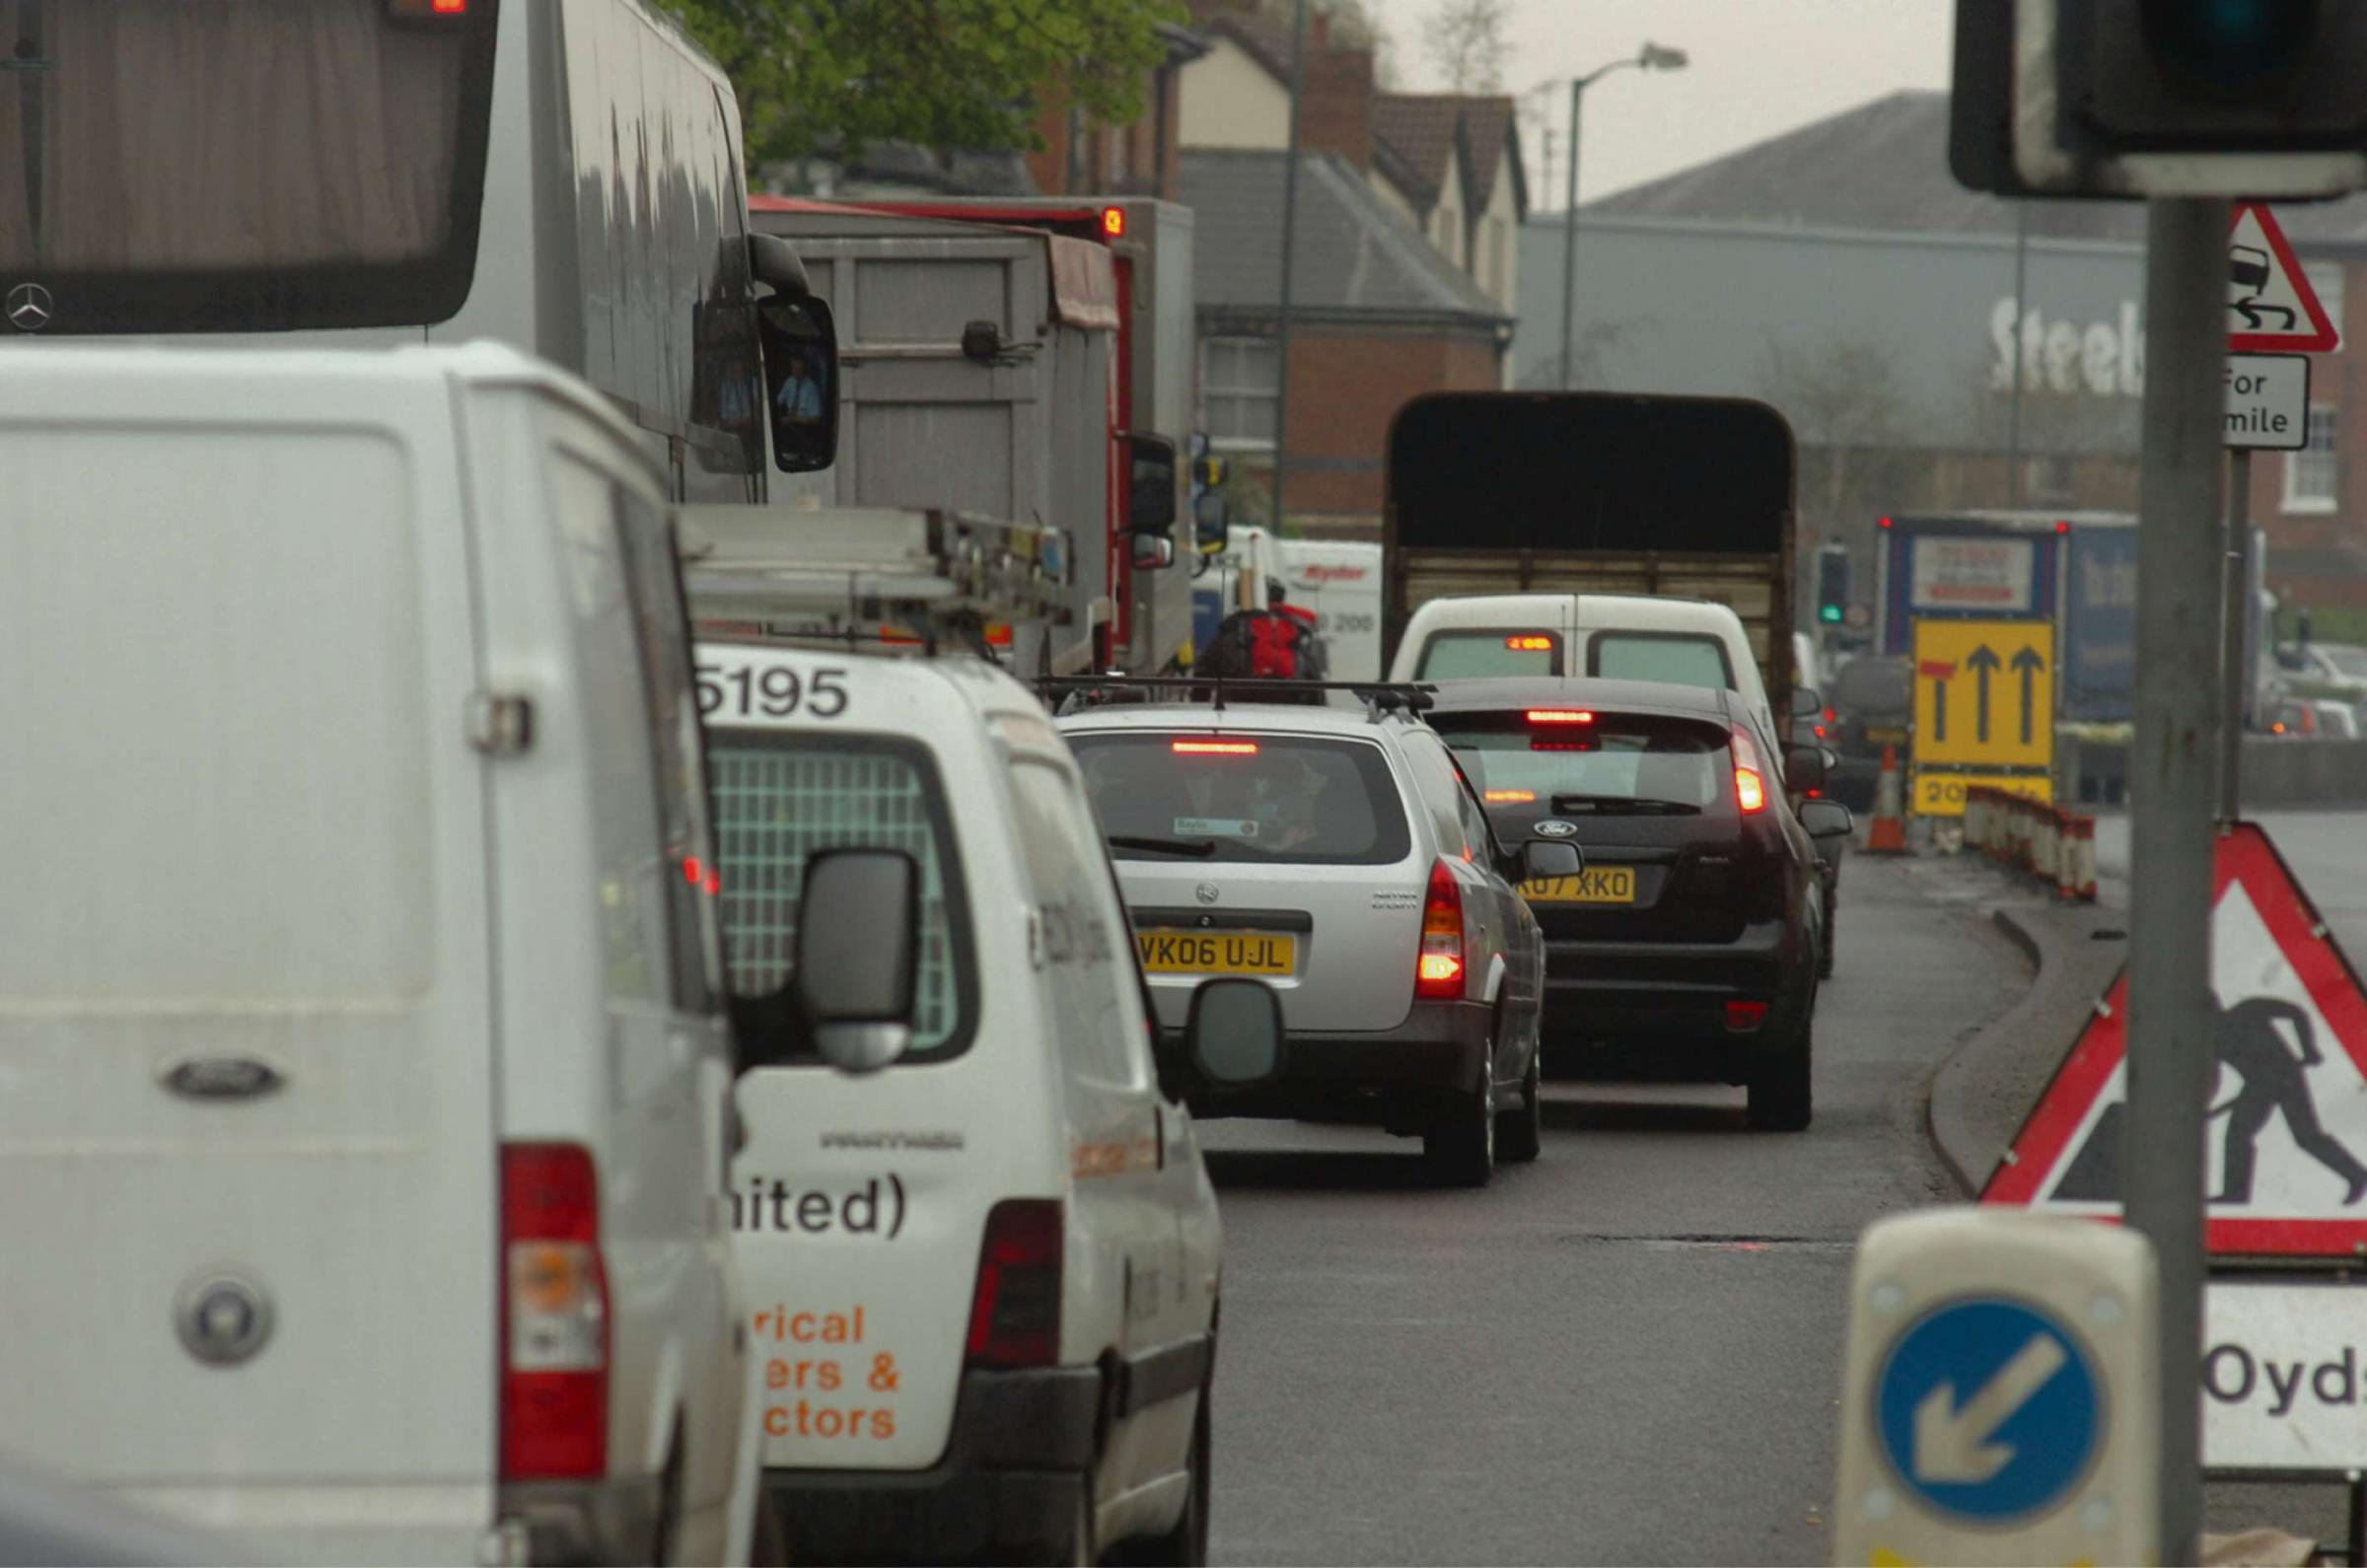 Road works in Hereford cause traffic chaos across the city. ENDS 091605-1 (7311051)